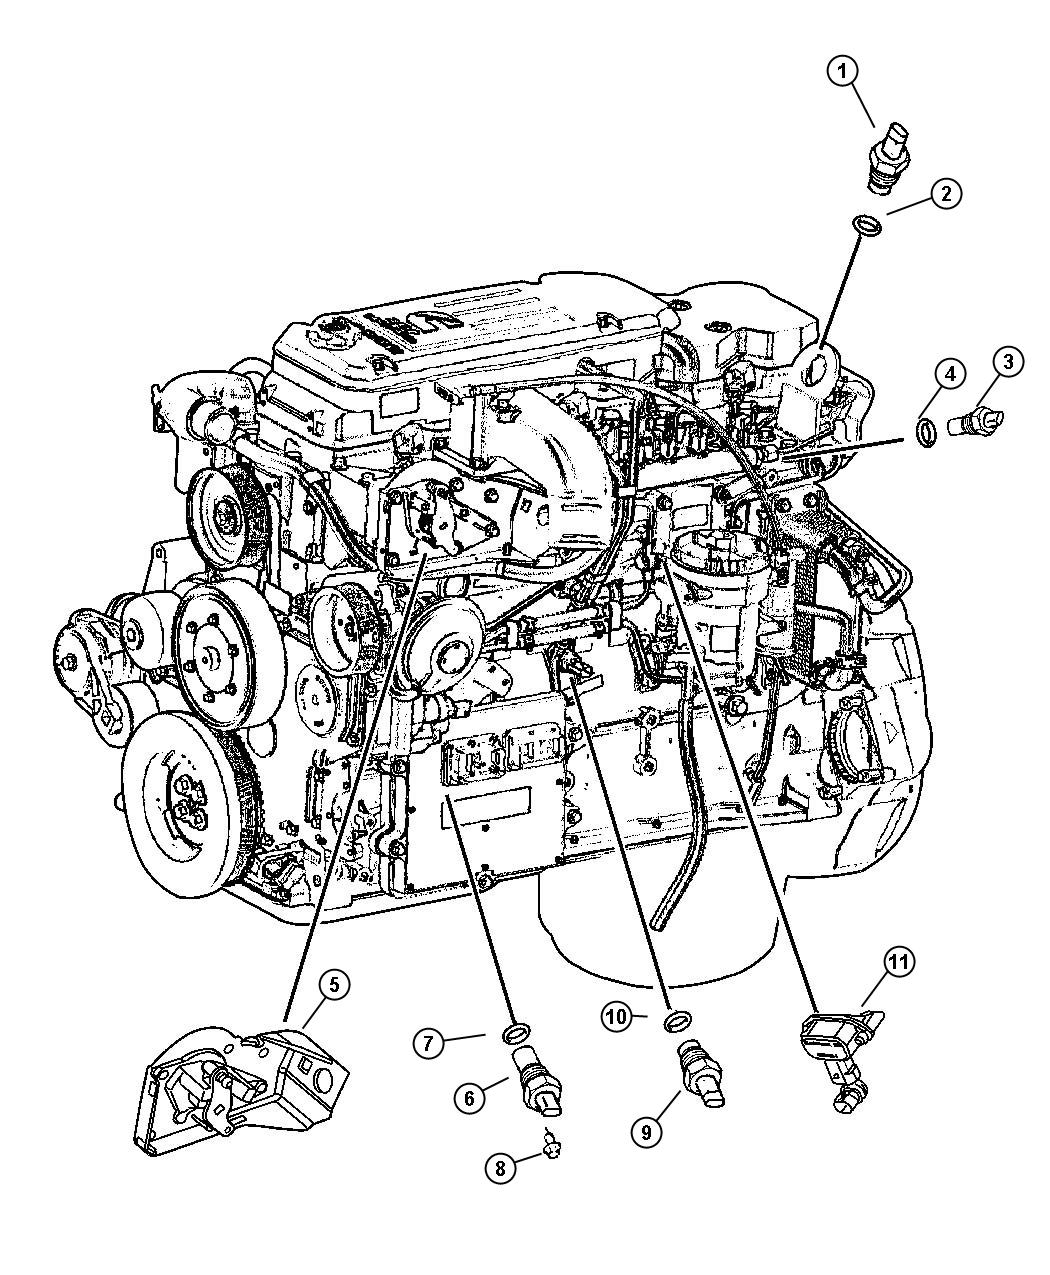 95 Dodge Stratus Engine Diagram Get Free Image About in addition Chrysler 300 Oil Pressure Switch Location as well 2006 Ford Five Hundred Transmission Diagram also 2006 Chrysler 300 Engine Diagram additionally 5 7 Hemi Engine Diagram Part. on chrysler 300 engine oil pressure sensor